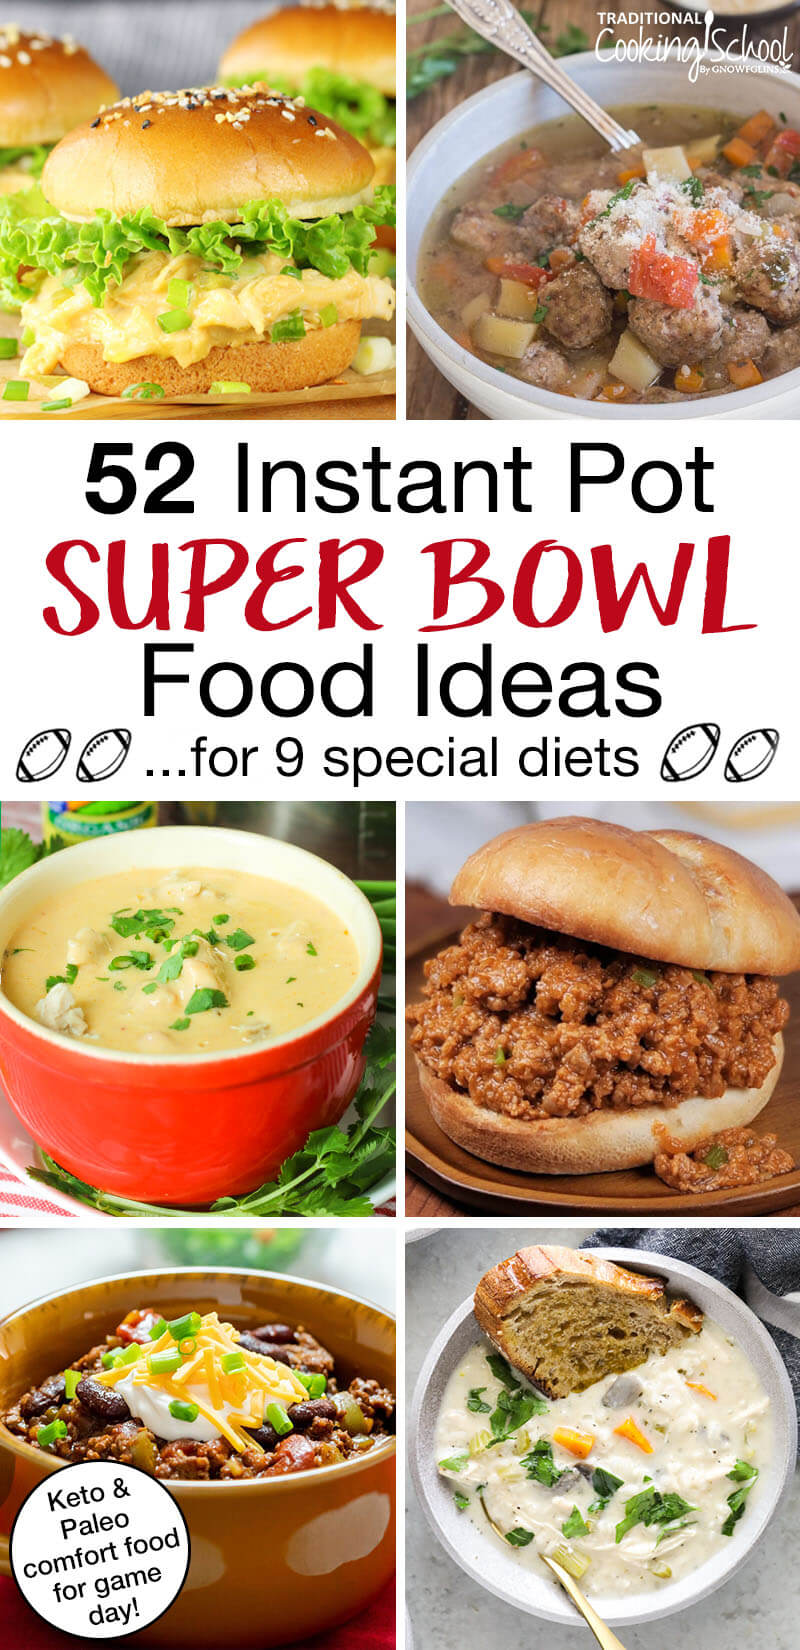 """photo collage of keto and paleo comfort food, such as sloppy joes and chili, with text overlay: """"52 Instant Pot Game Day Recipes For A Crowd... for 9 special diets (Keto, Paleo, Whole30, & more!)"""""""